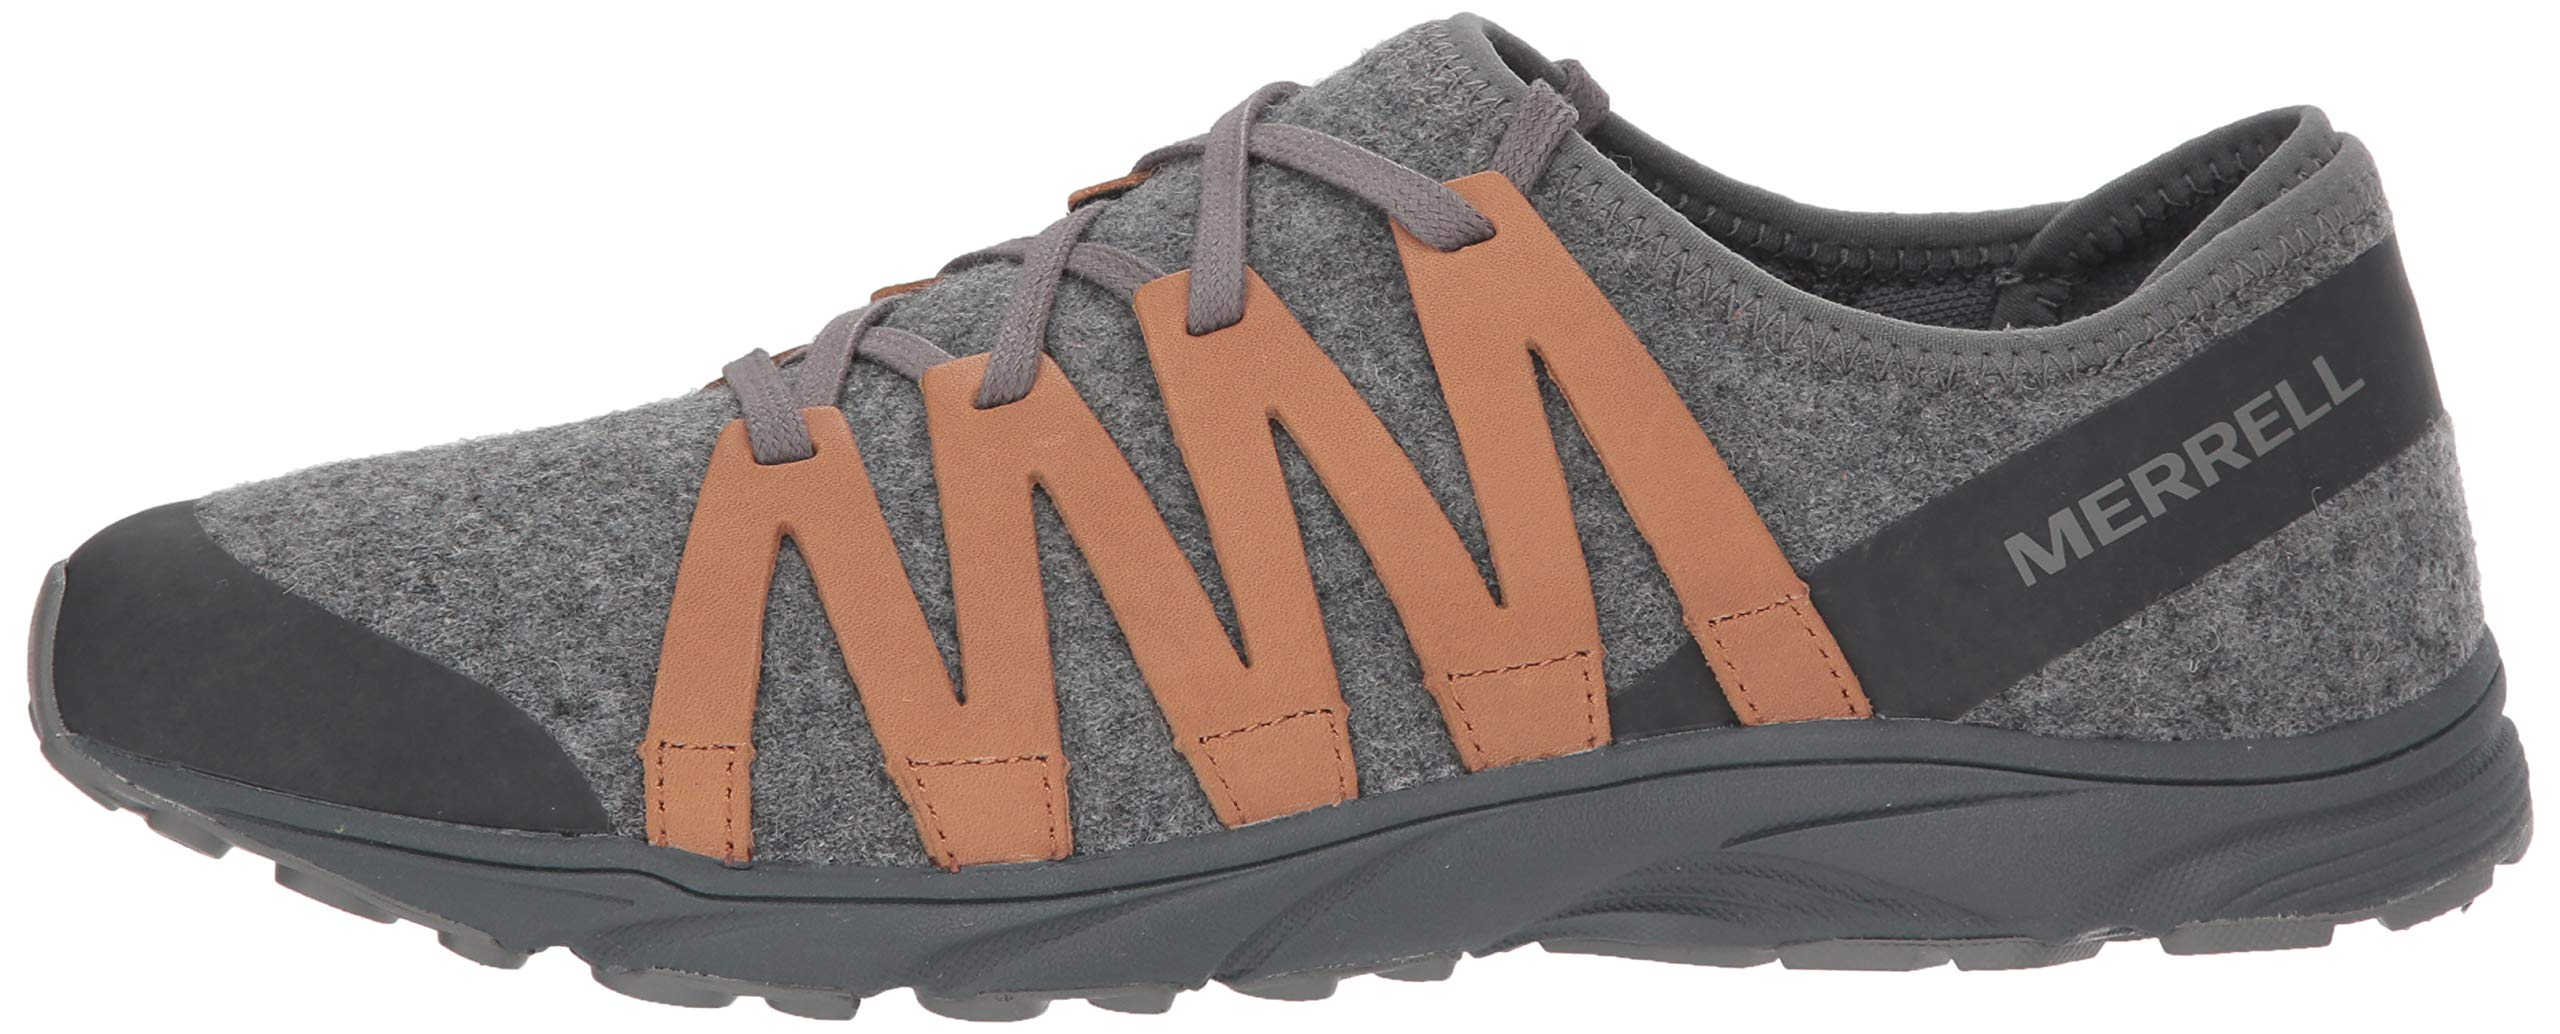 Merrell Women's Riveter Wool Sneaker Charcoal 11 M US by Merrell (Image #5)